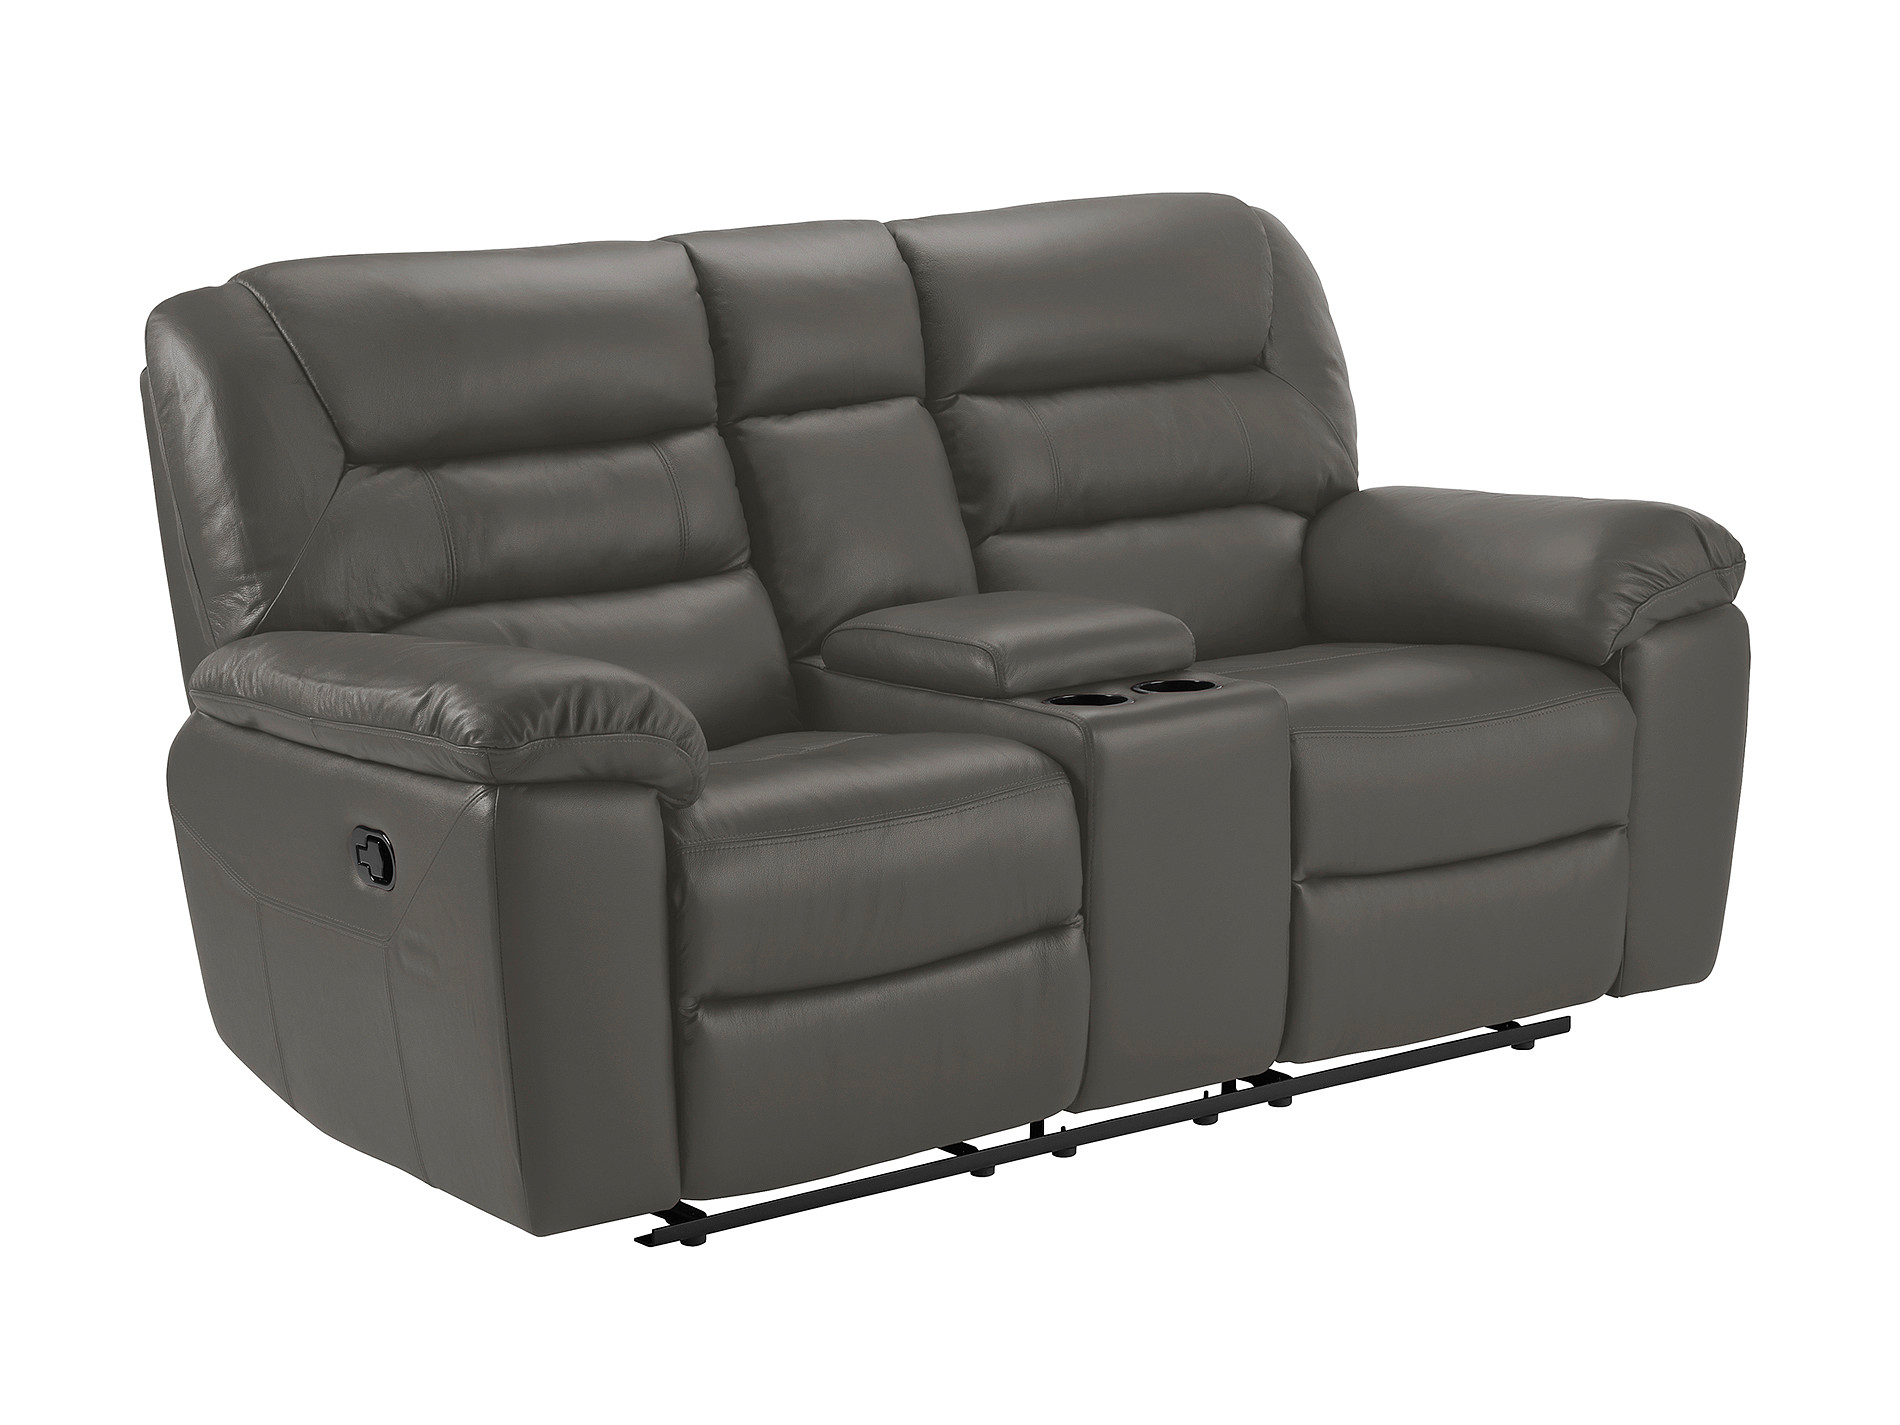 Devon Small Sofa With Manual Recliners Grey Faux Leather